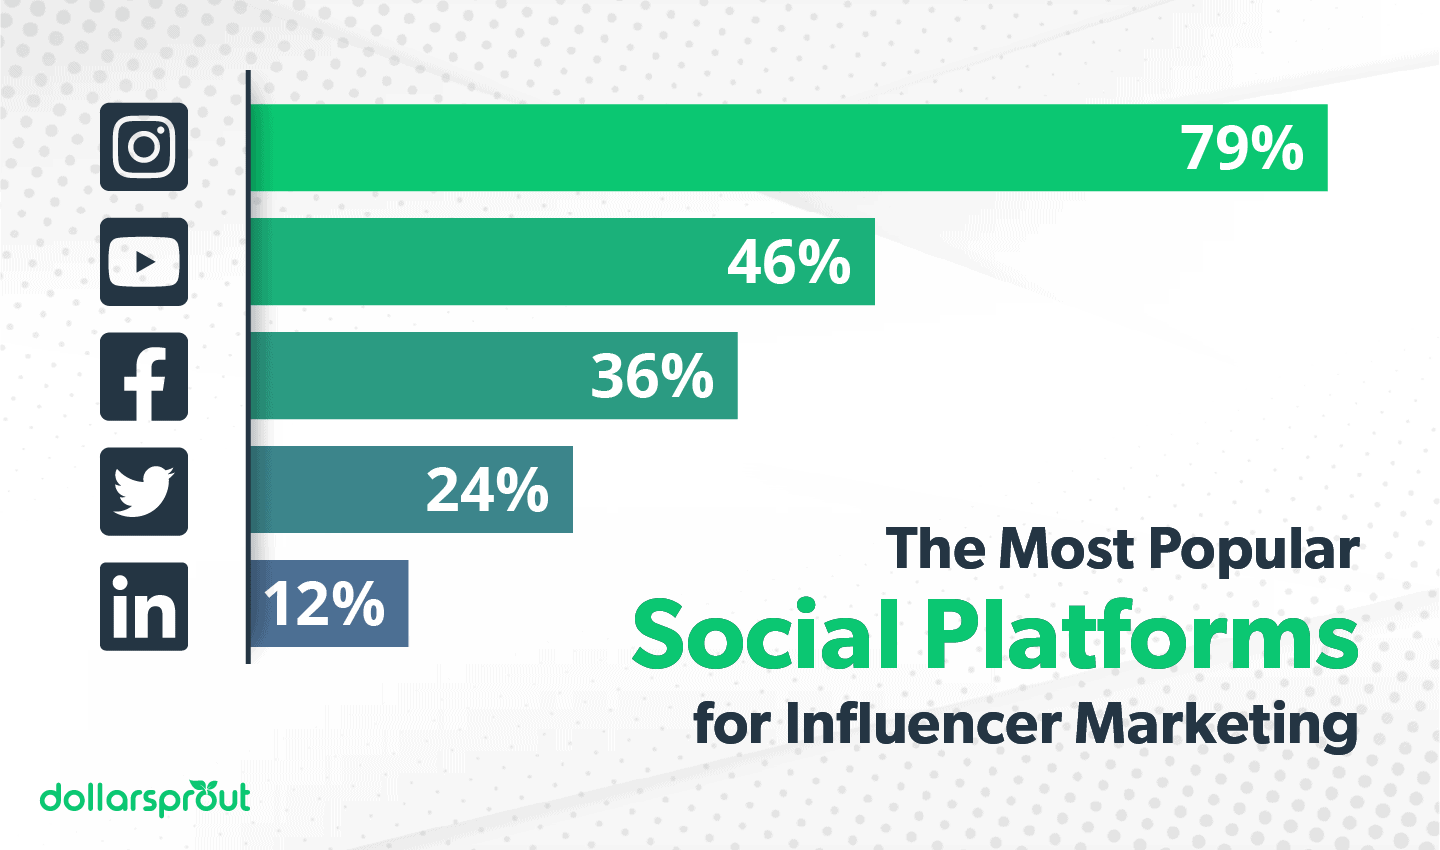 The Most Popular Social Platforms for Influencer Marketing